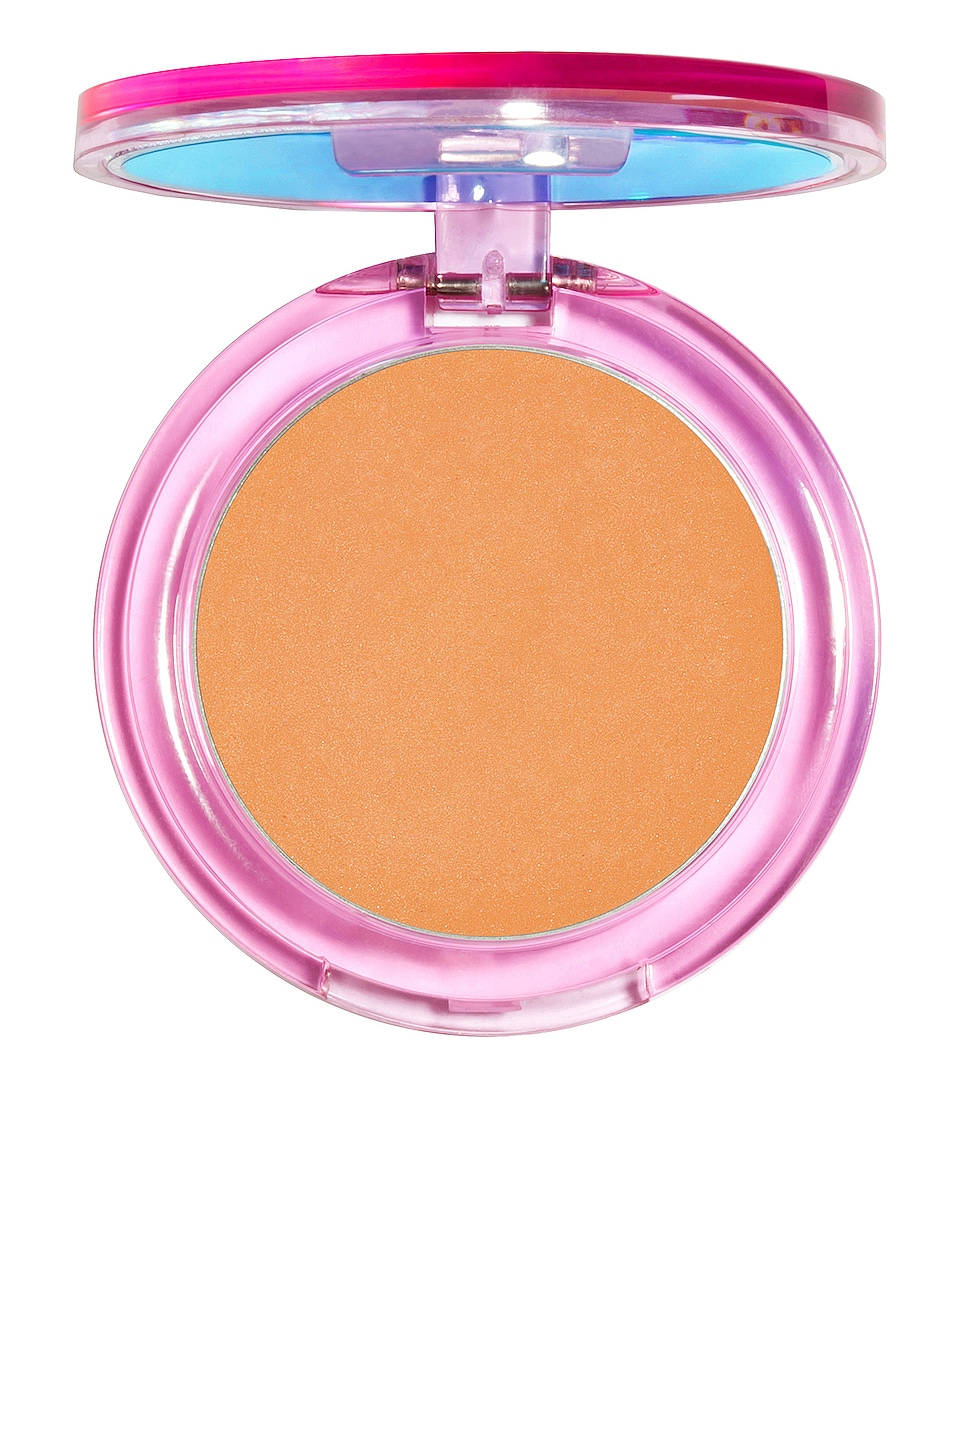 Lime Crime Glow Softwear Blush in Download